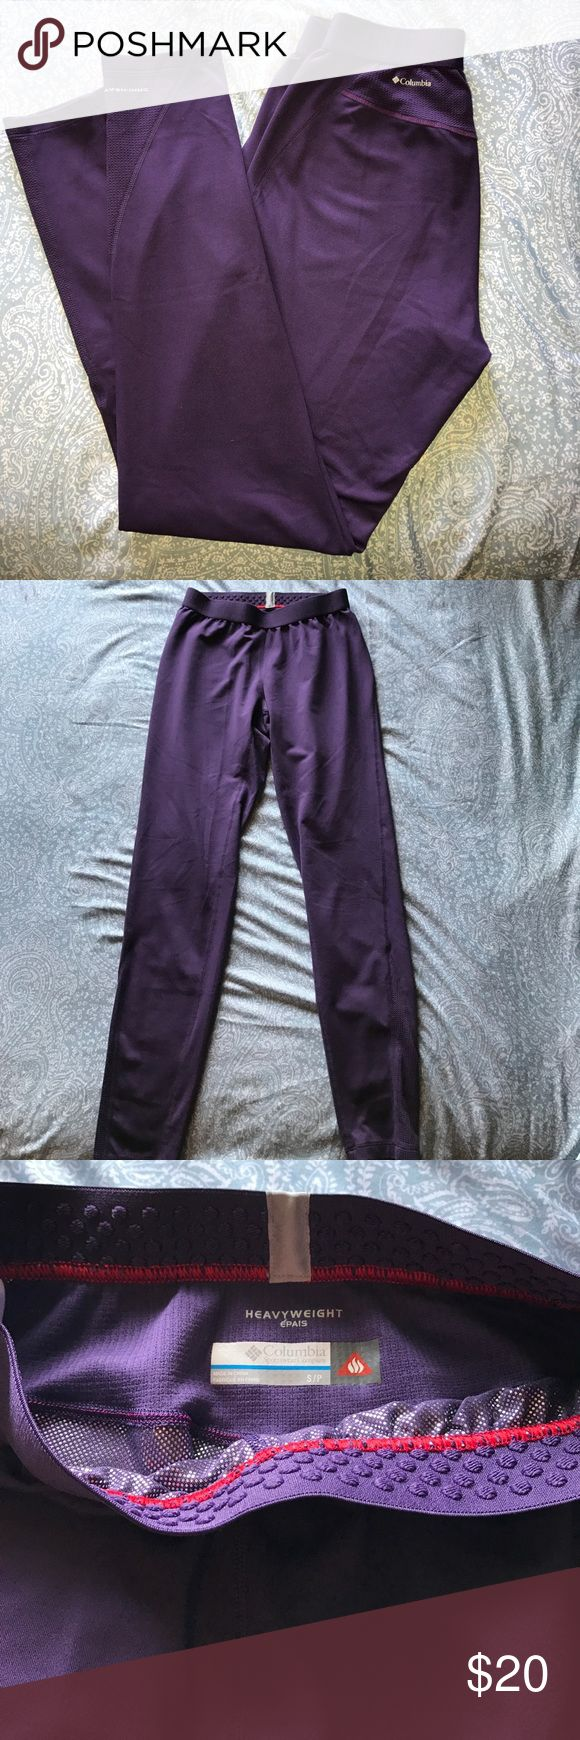 Columbia omni-heat heavy duty leggings Columbia Sportswear Company Omni shield, Omni heat purple, deep blush quill leggings. Full length leggings with tons of stretch measures at 36 1/2 inches length. Columbia Pants Leggings